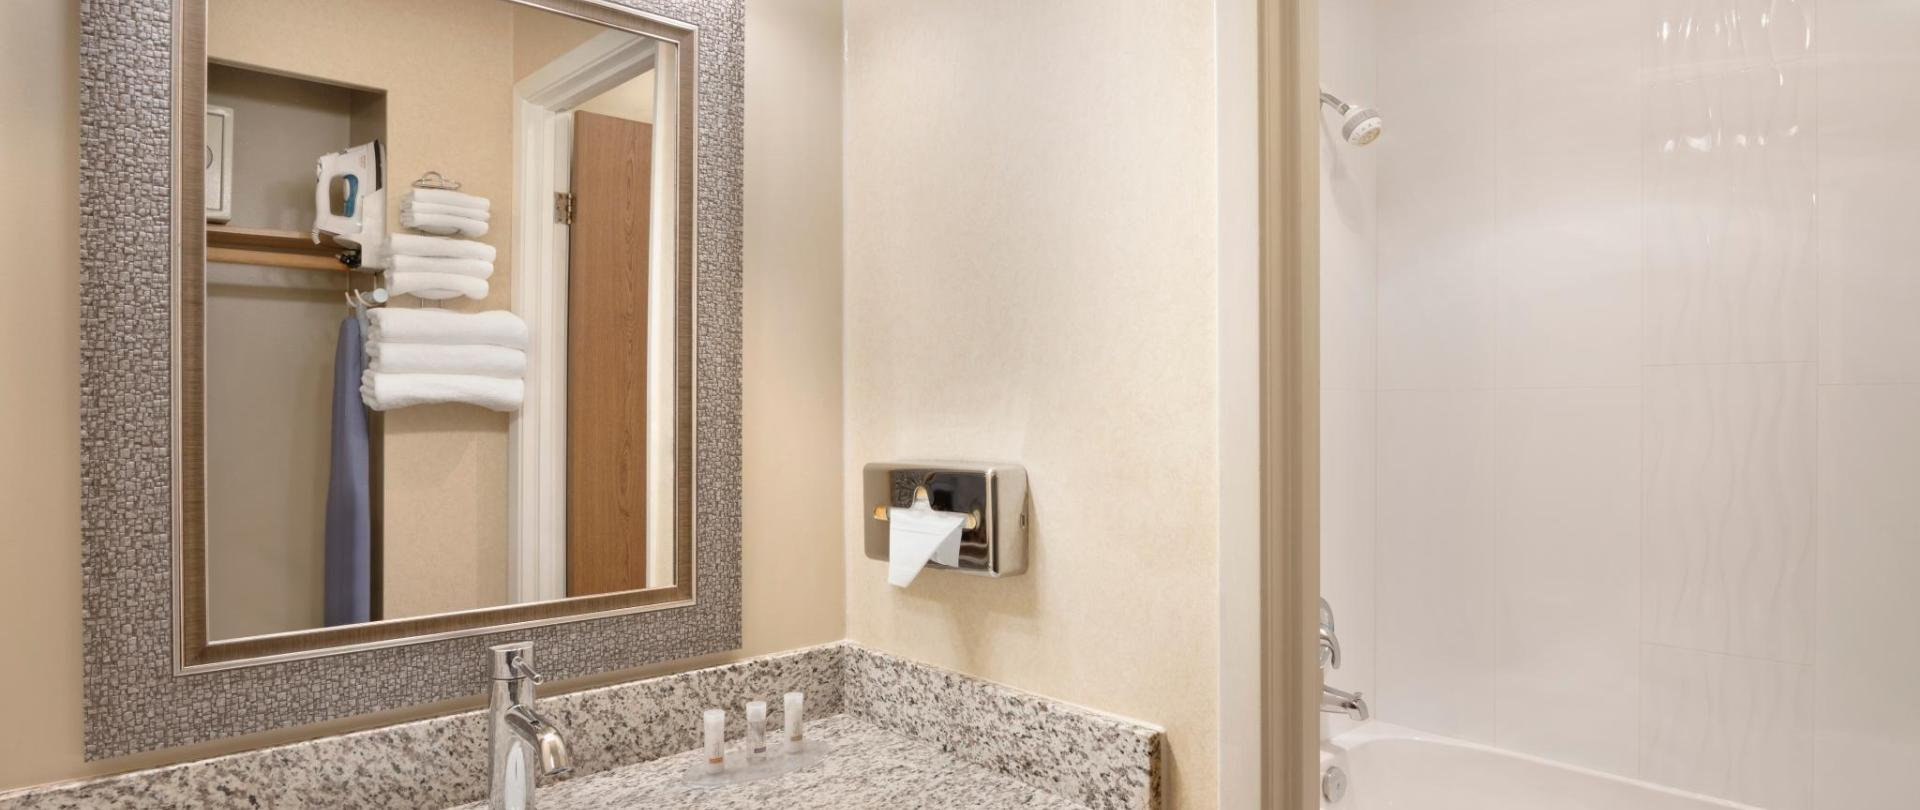 Days Inn Nanaimo - Guestroom Bathroom - 1446722.jpg